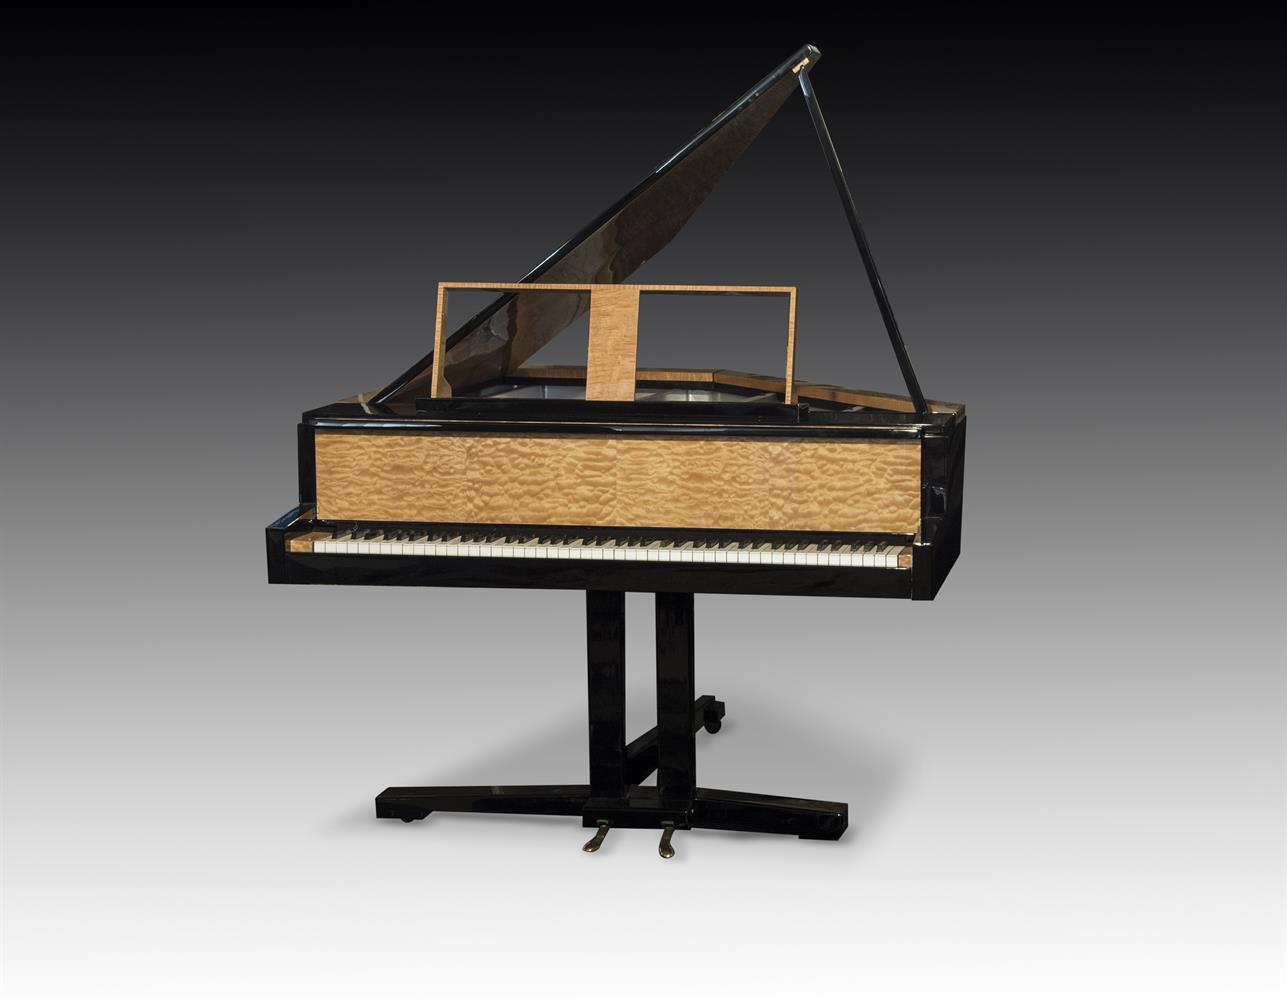 † LINDNER; A 6'2'' 'TILTING WING' SCHWANDER ACTION GRAND PIANO, CIRCA 1970 - Image 2 of 5